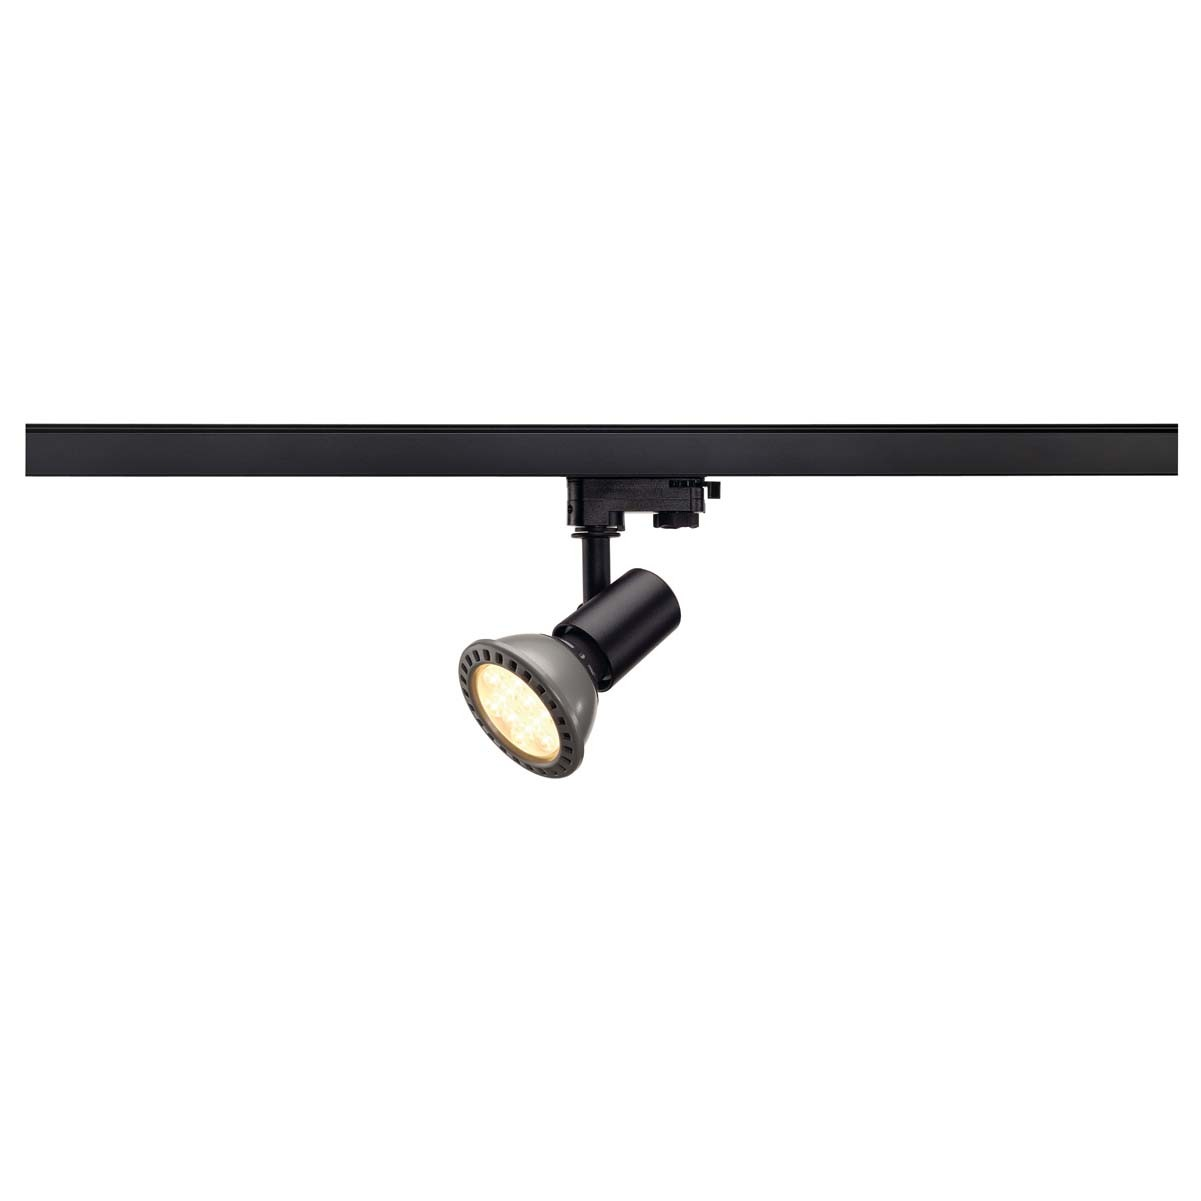 SLV 152200 E27 Spot 75W Black Eutrac 3 Circuit 240V Track Light